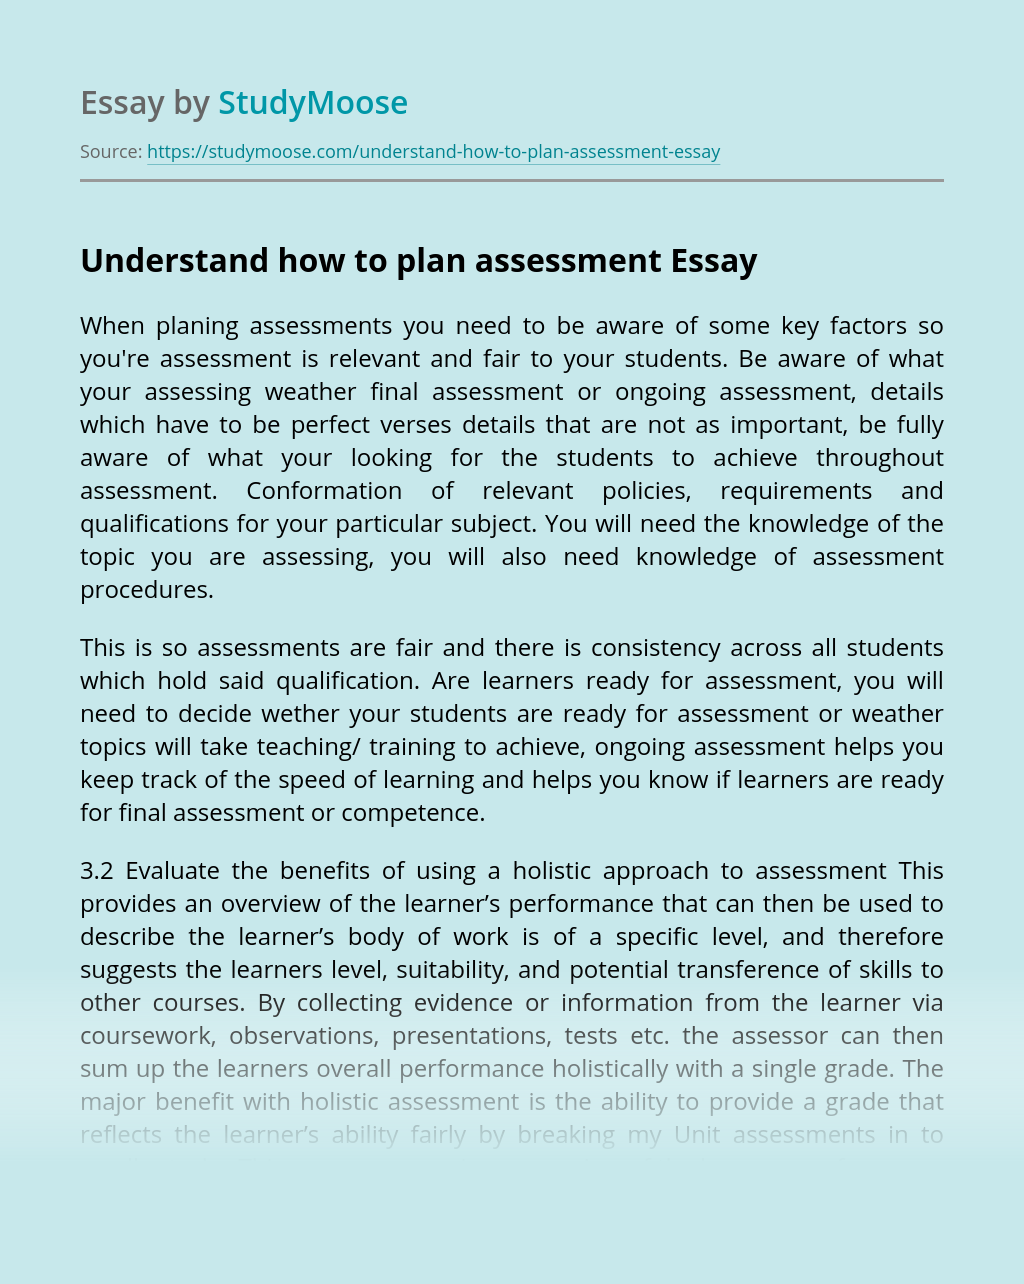 Understand how to plan assessment